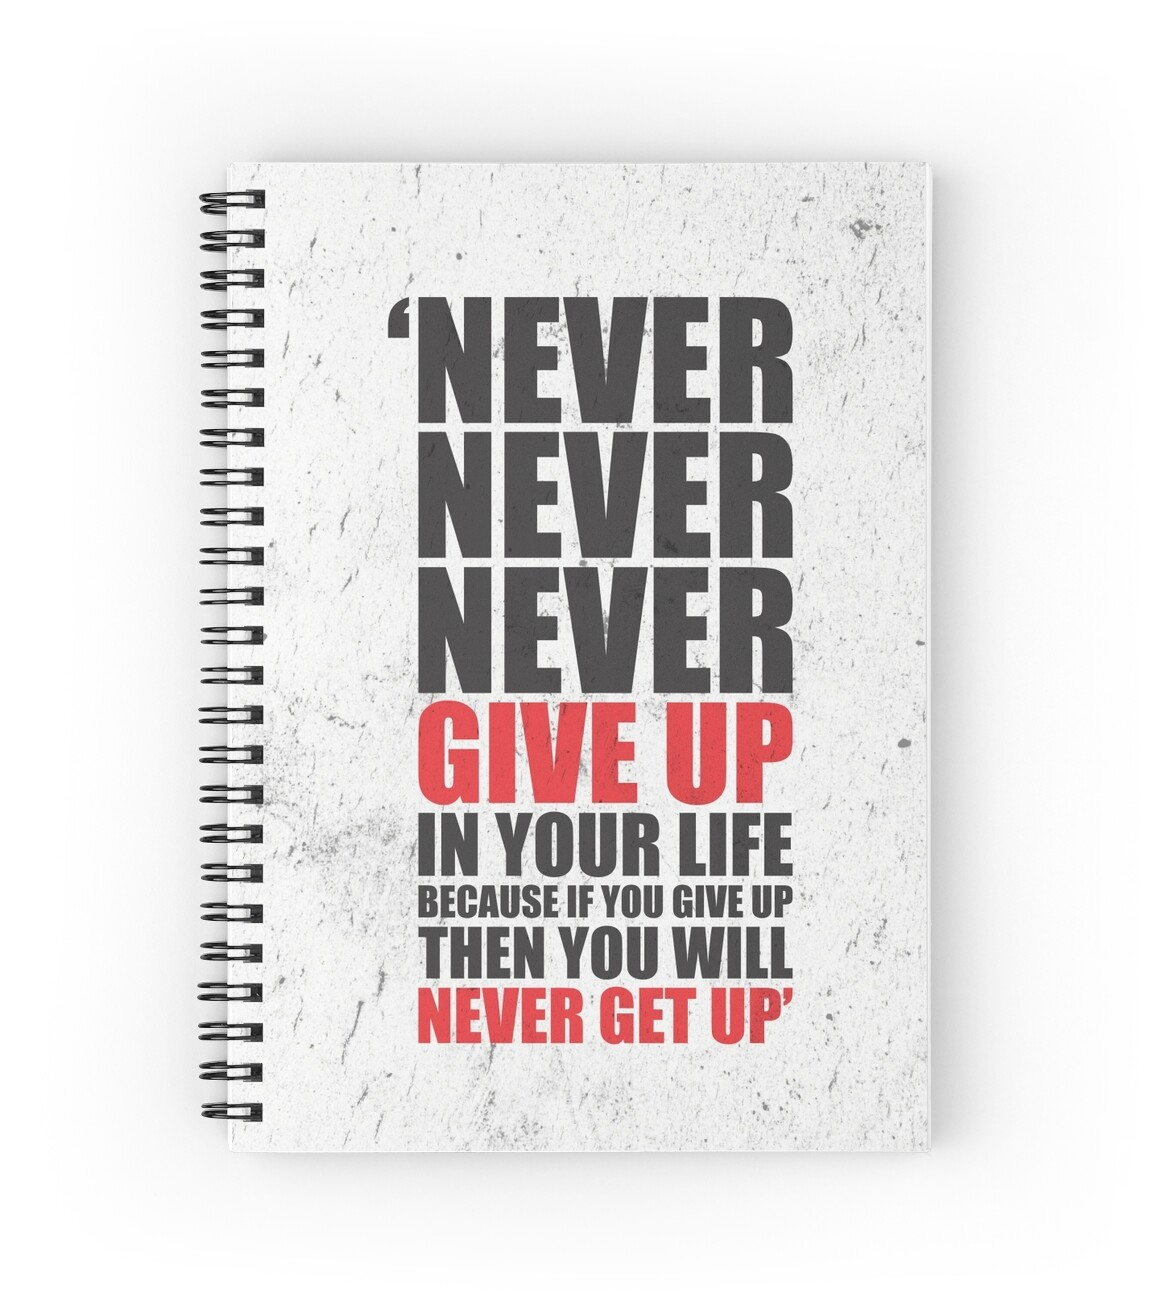 Never Give Up On Life Quotes Never Never Never Give Up In Your Life Because If You Give Up Then